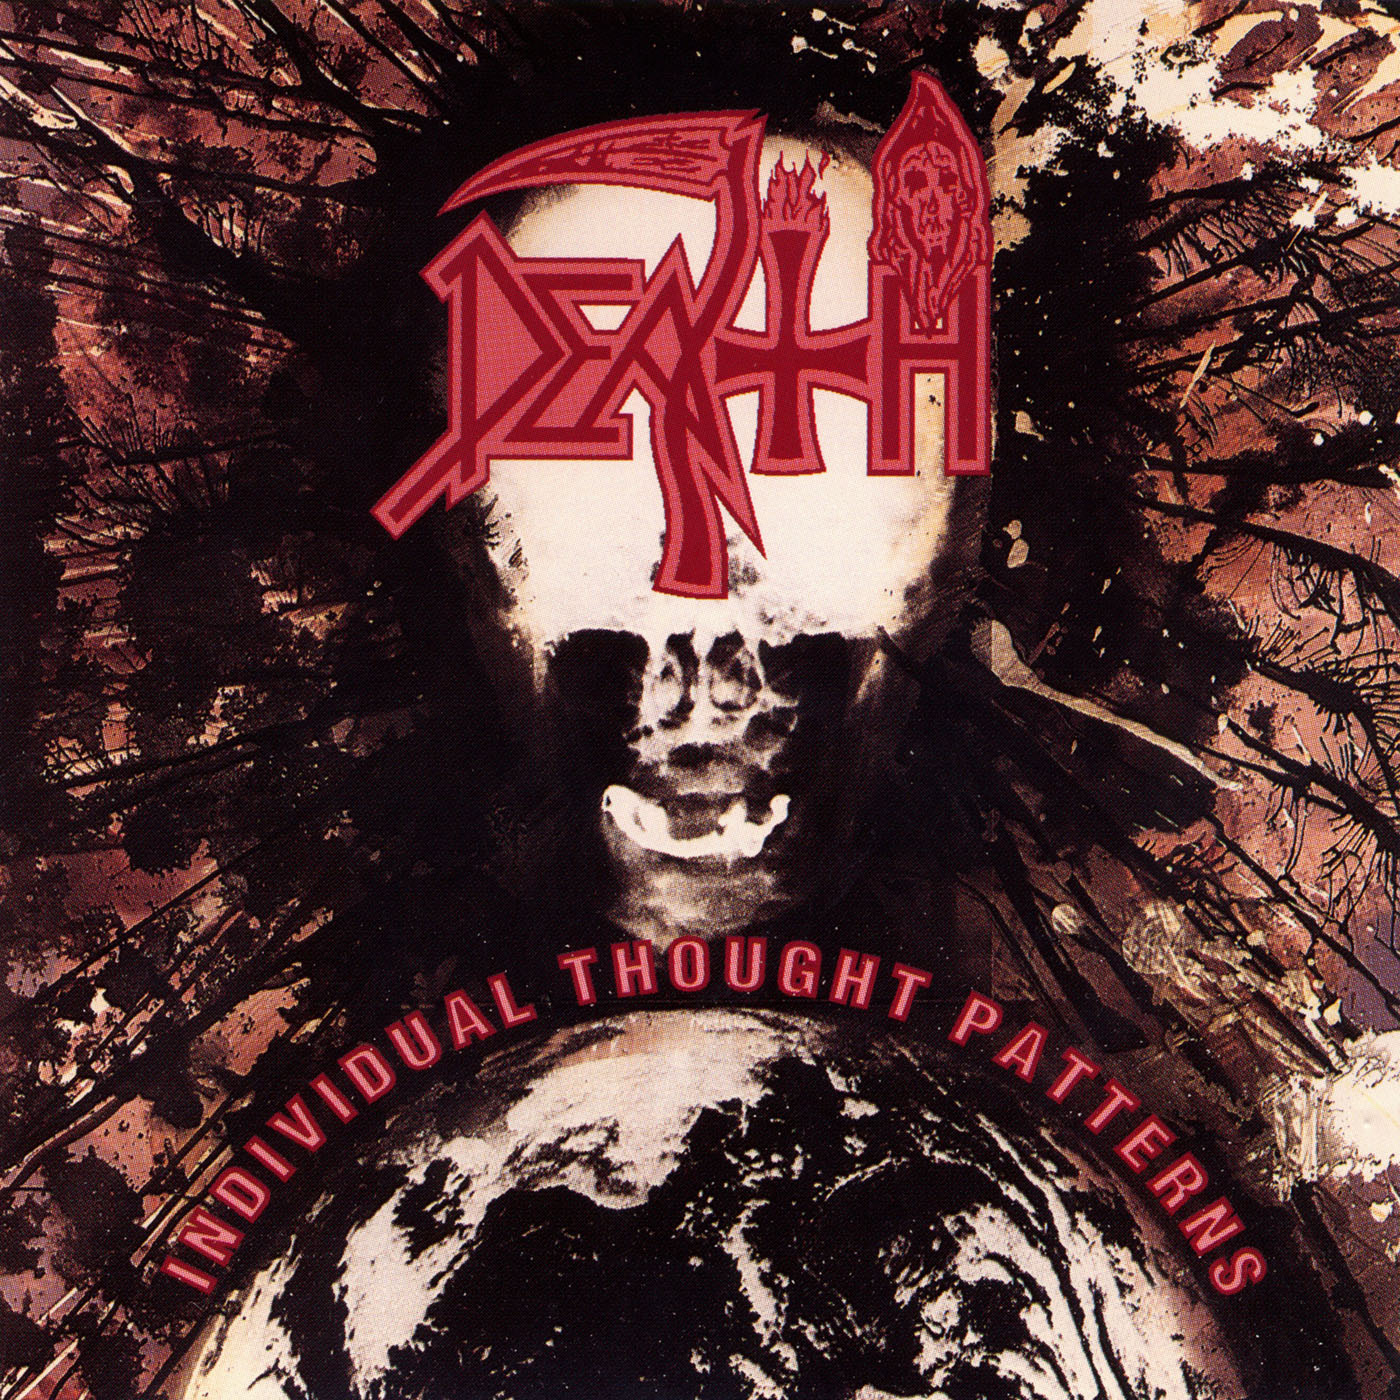 Individual Thought Patterns Reissue